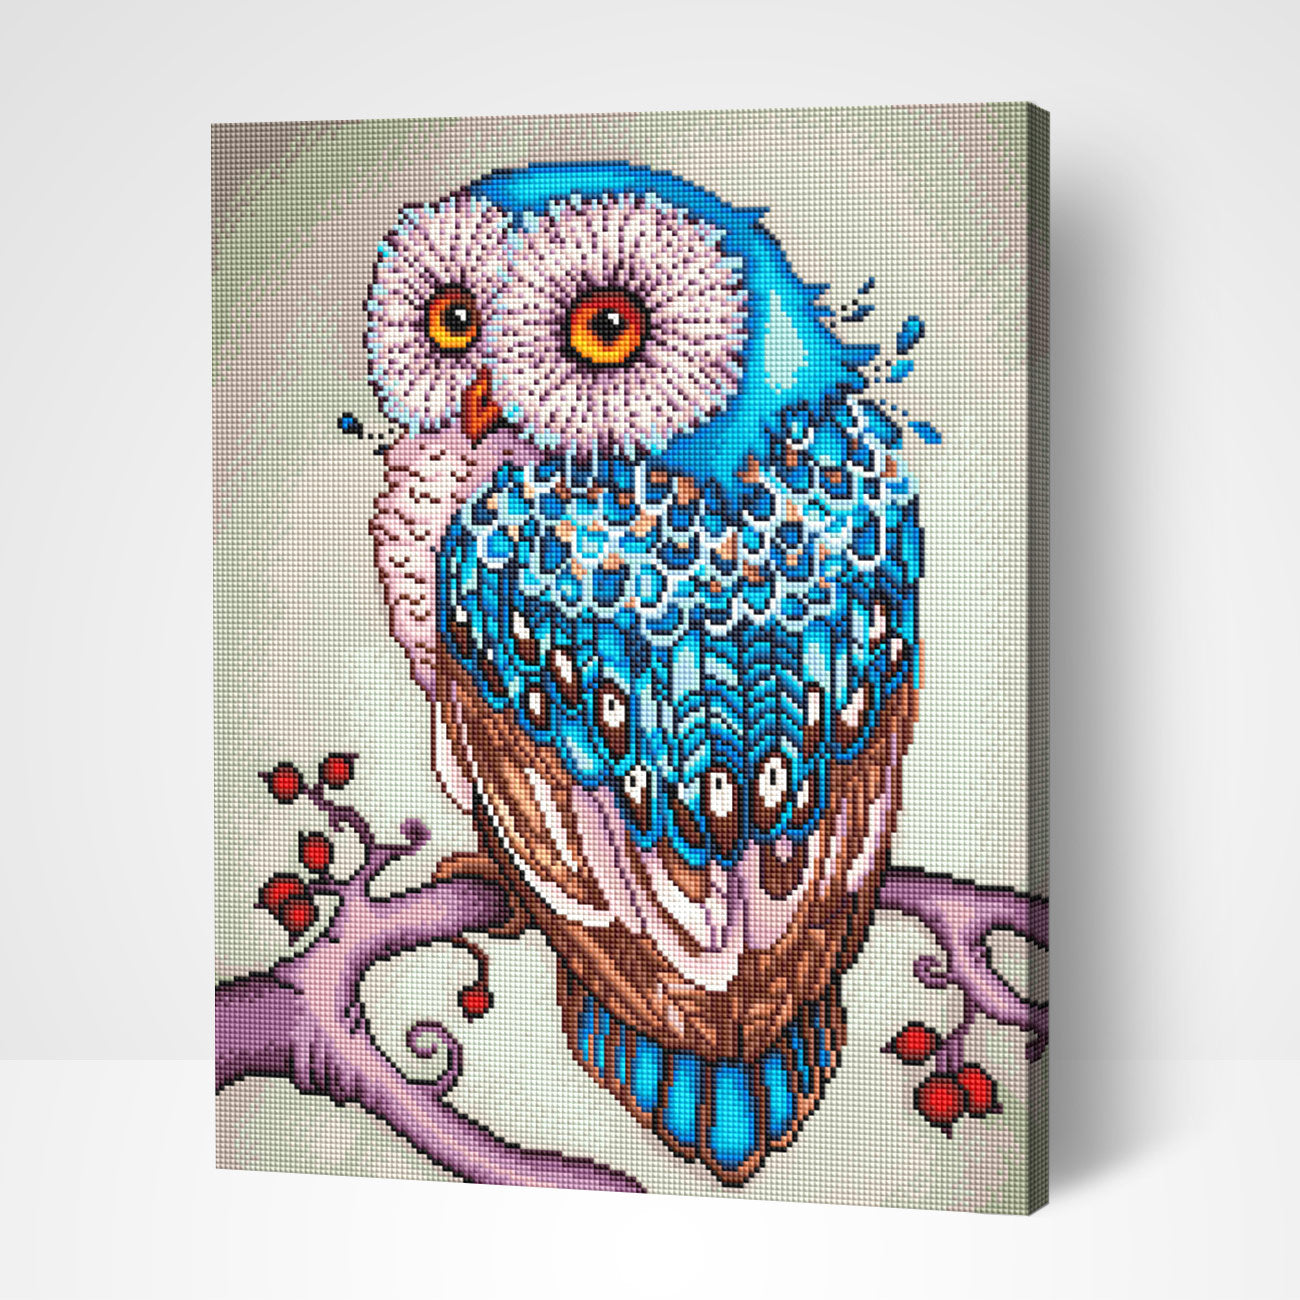 Shining Owl - Diamond Painting